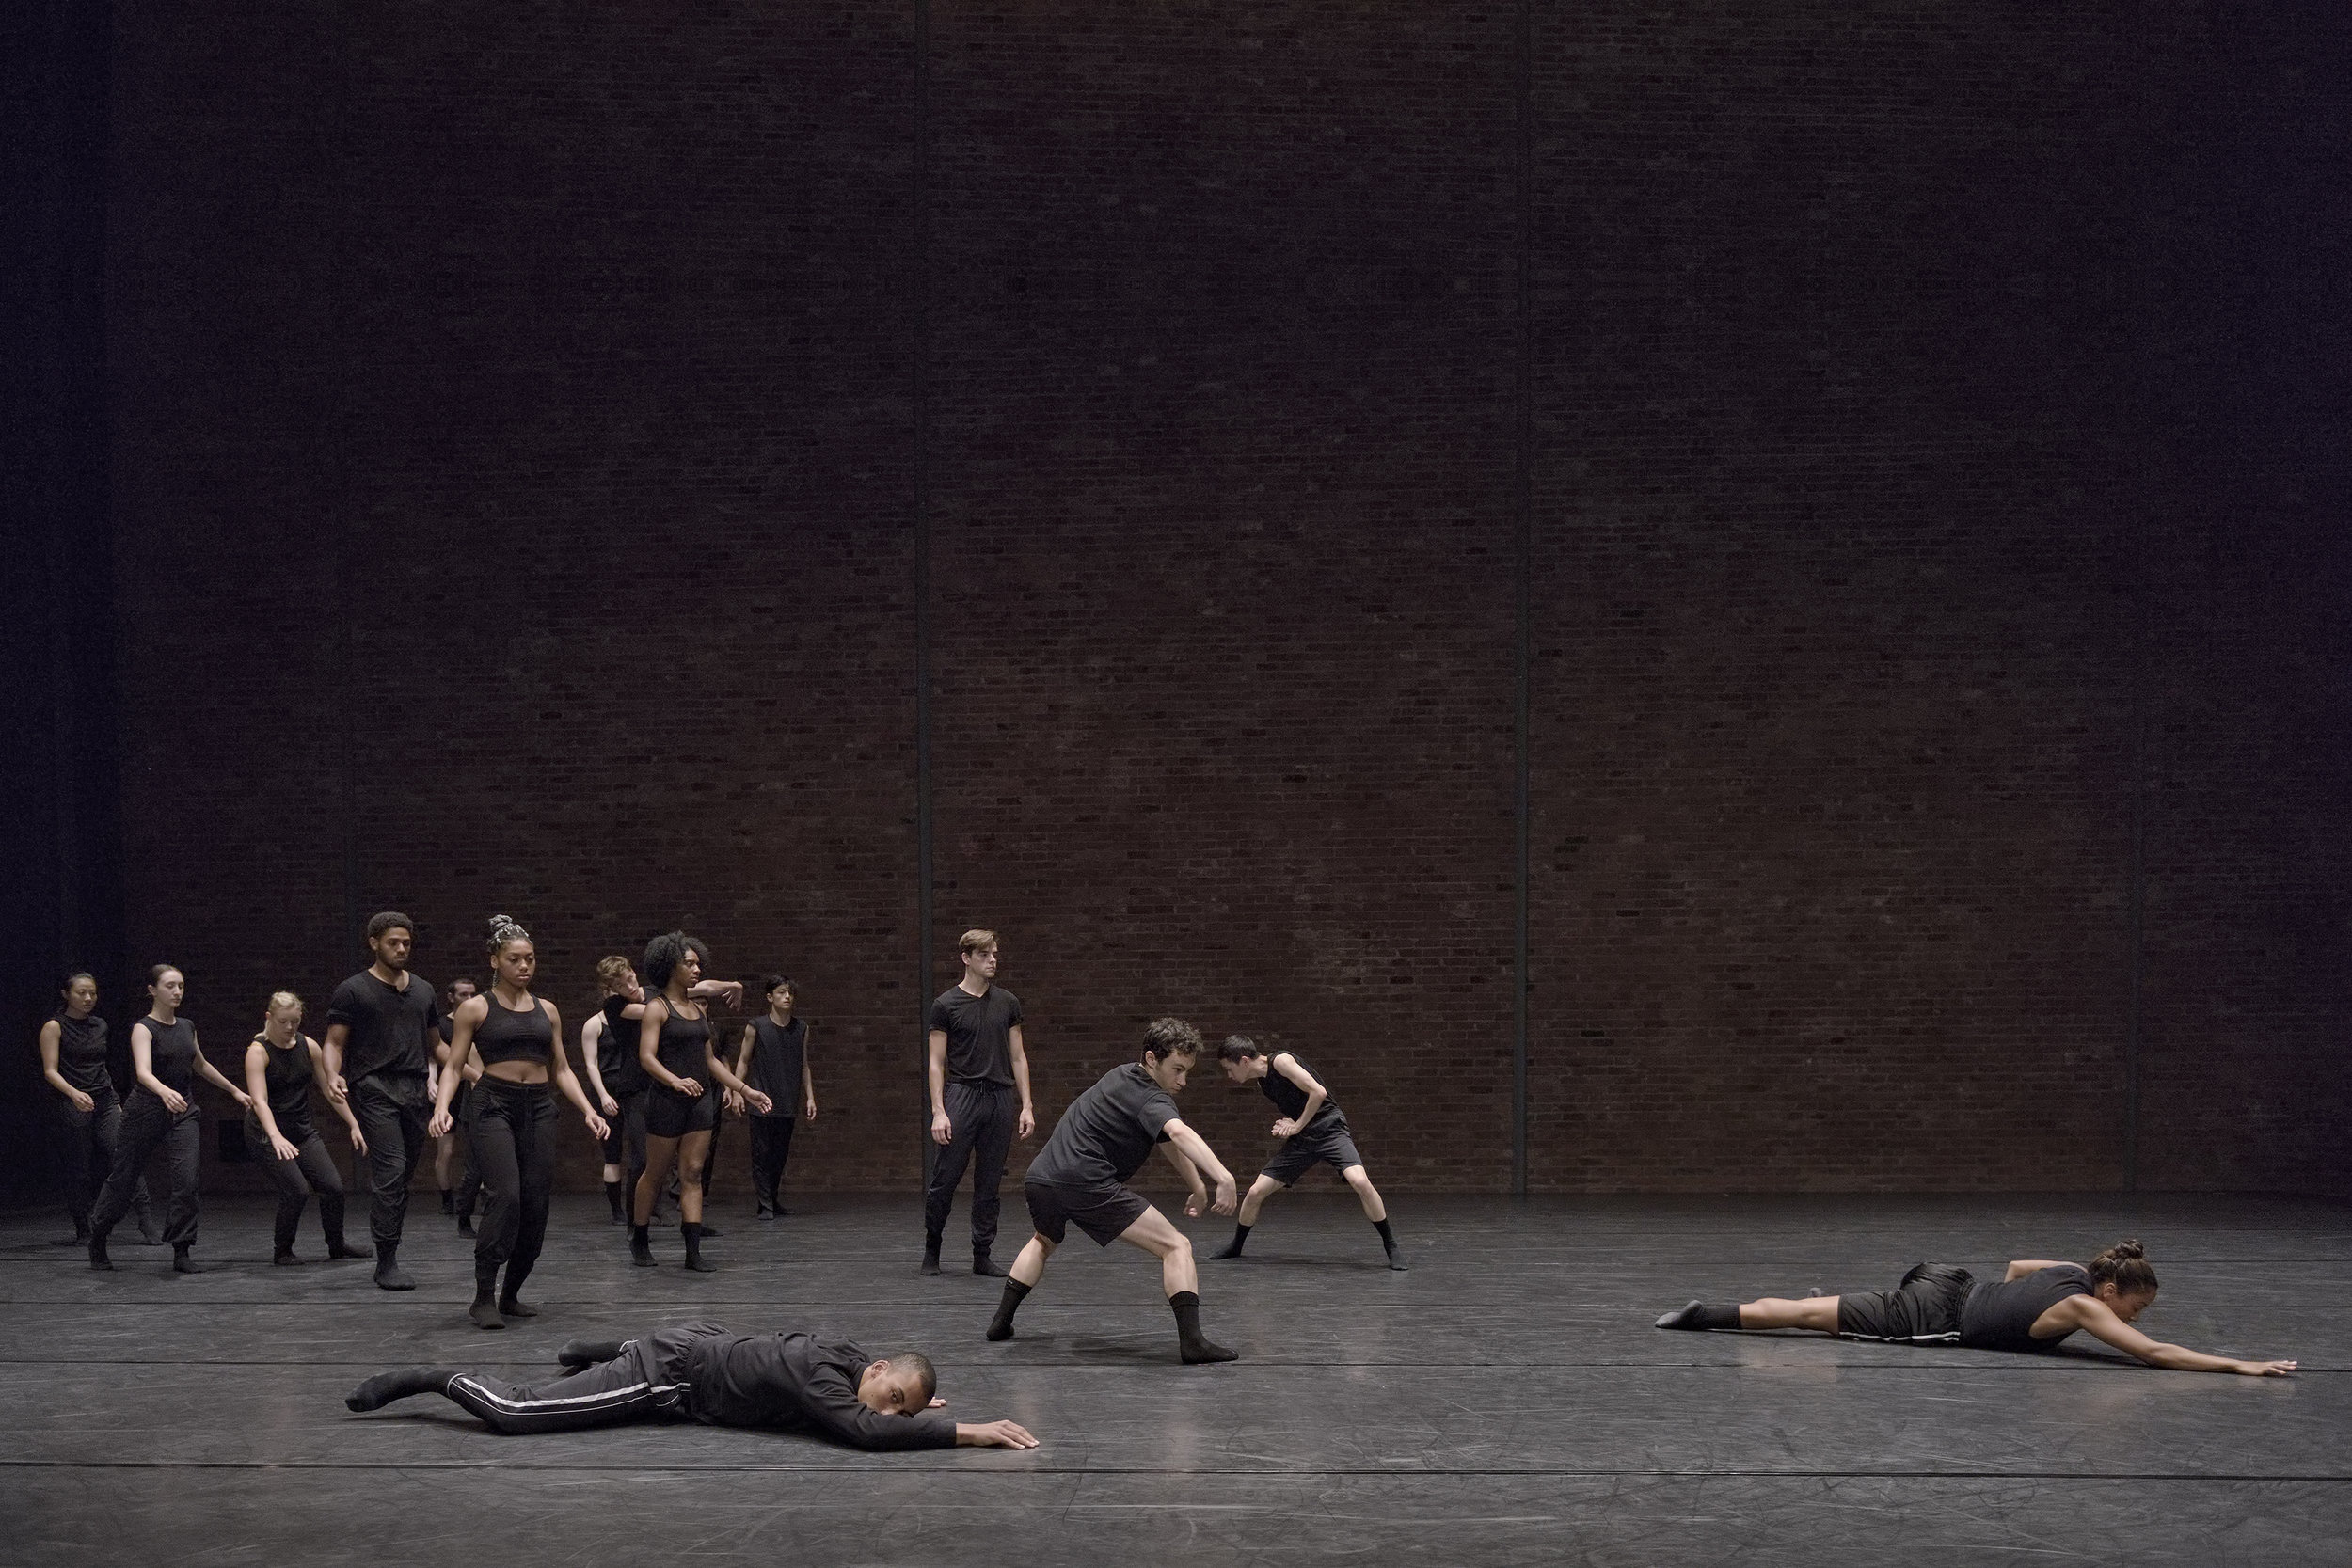 Photography by Michael Slobodian / 'big kid' presented at Usine C for Springboard Danse Montreal 2018, Emerging Choreographer